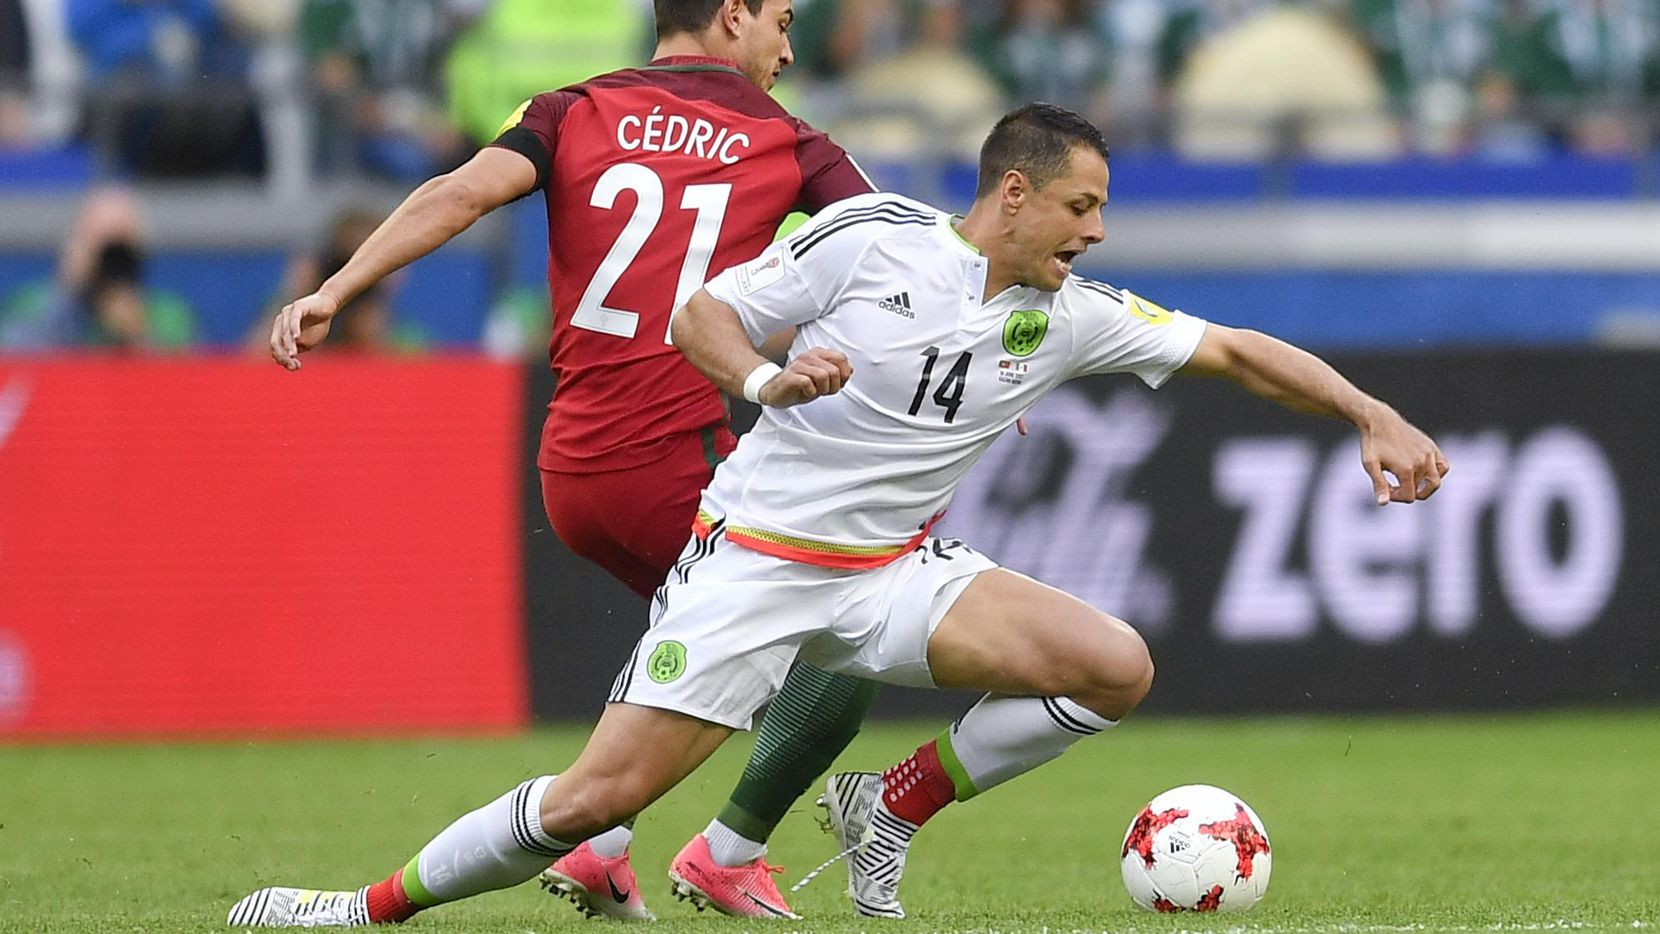 """Javier """"Chicharito"""" Hernández se recupera de leción en Mexico's Javier Hernandez, right, is challenged by Portugal's Cedric Soares during the Confederations Cup, Group A soccer match between Portugal and Mexico, at the Kazan Arena, Russia, Sunday, June 18, 2017. (AP Photo/Martin Meissner) (AP/Martin Meissner)"""